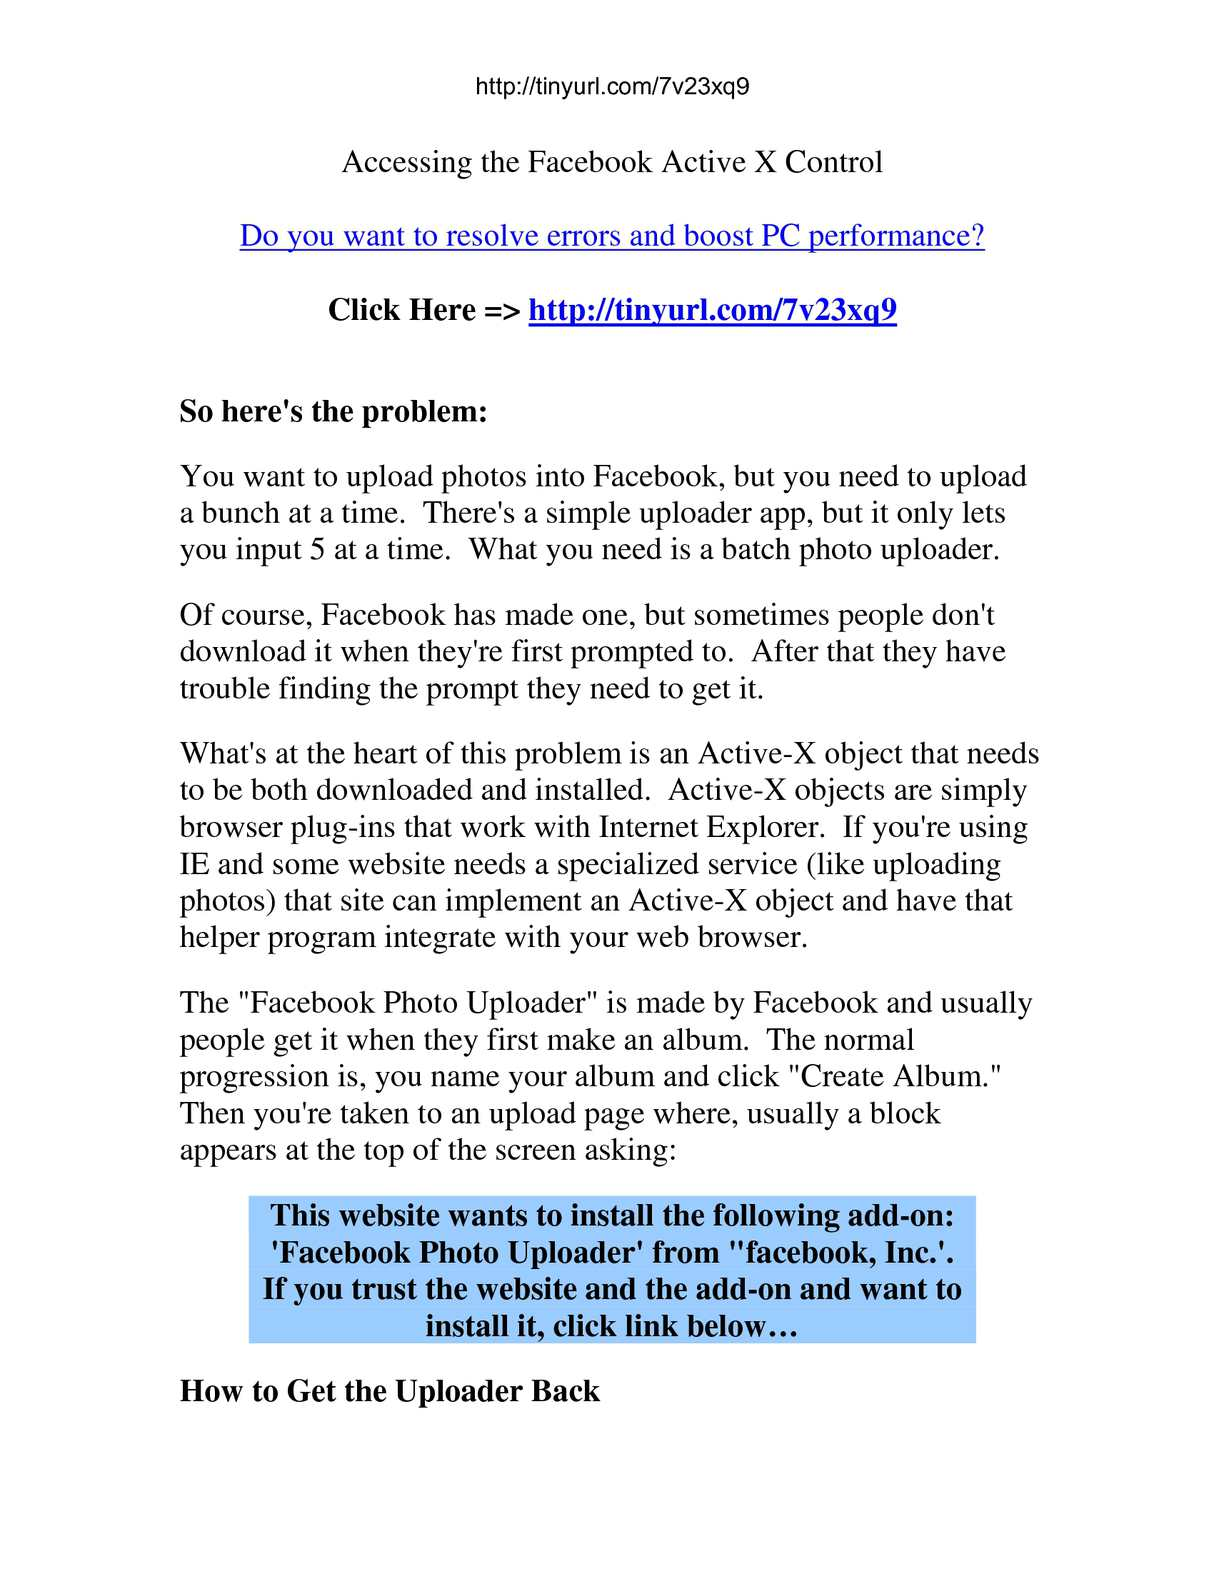 Calaméo - Fix PC Problems Fast - Accessing the Facebook Active - X